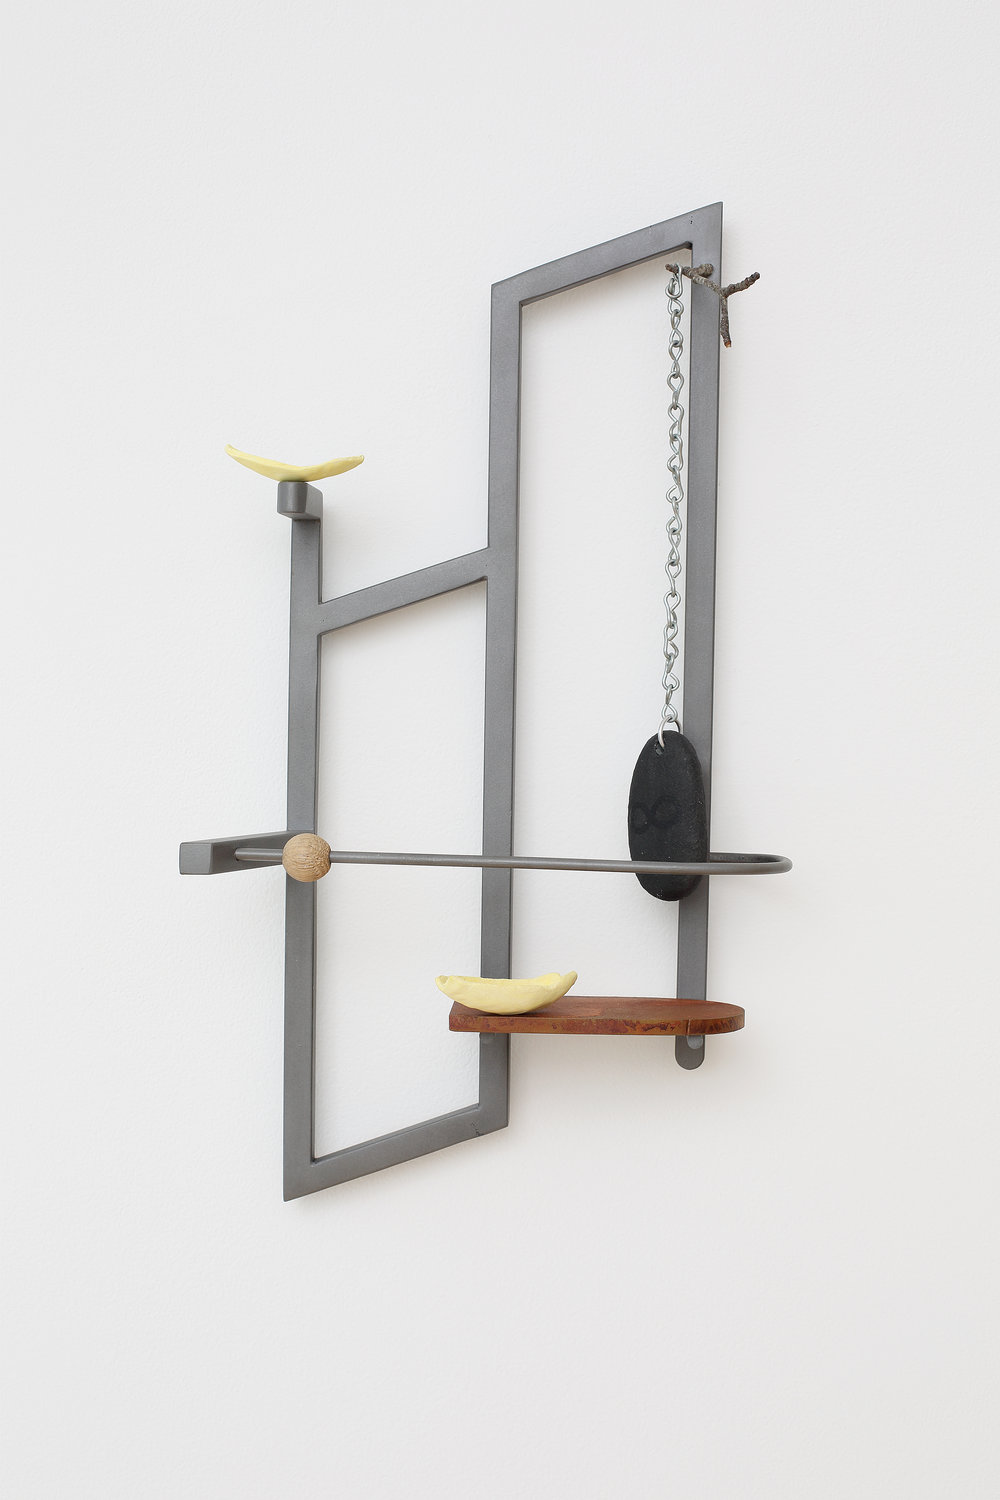 Lesley Jackson ,  Stopping to Rub a Stone , 2017, Steel, lacquer, chain, hand-painted rock, ceramic Frito chips, oak bead, rusted steel shelf